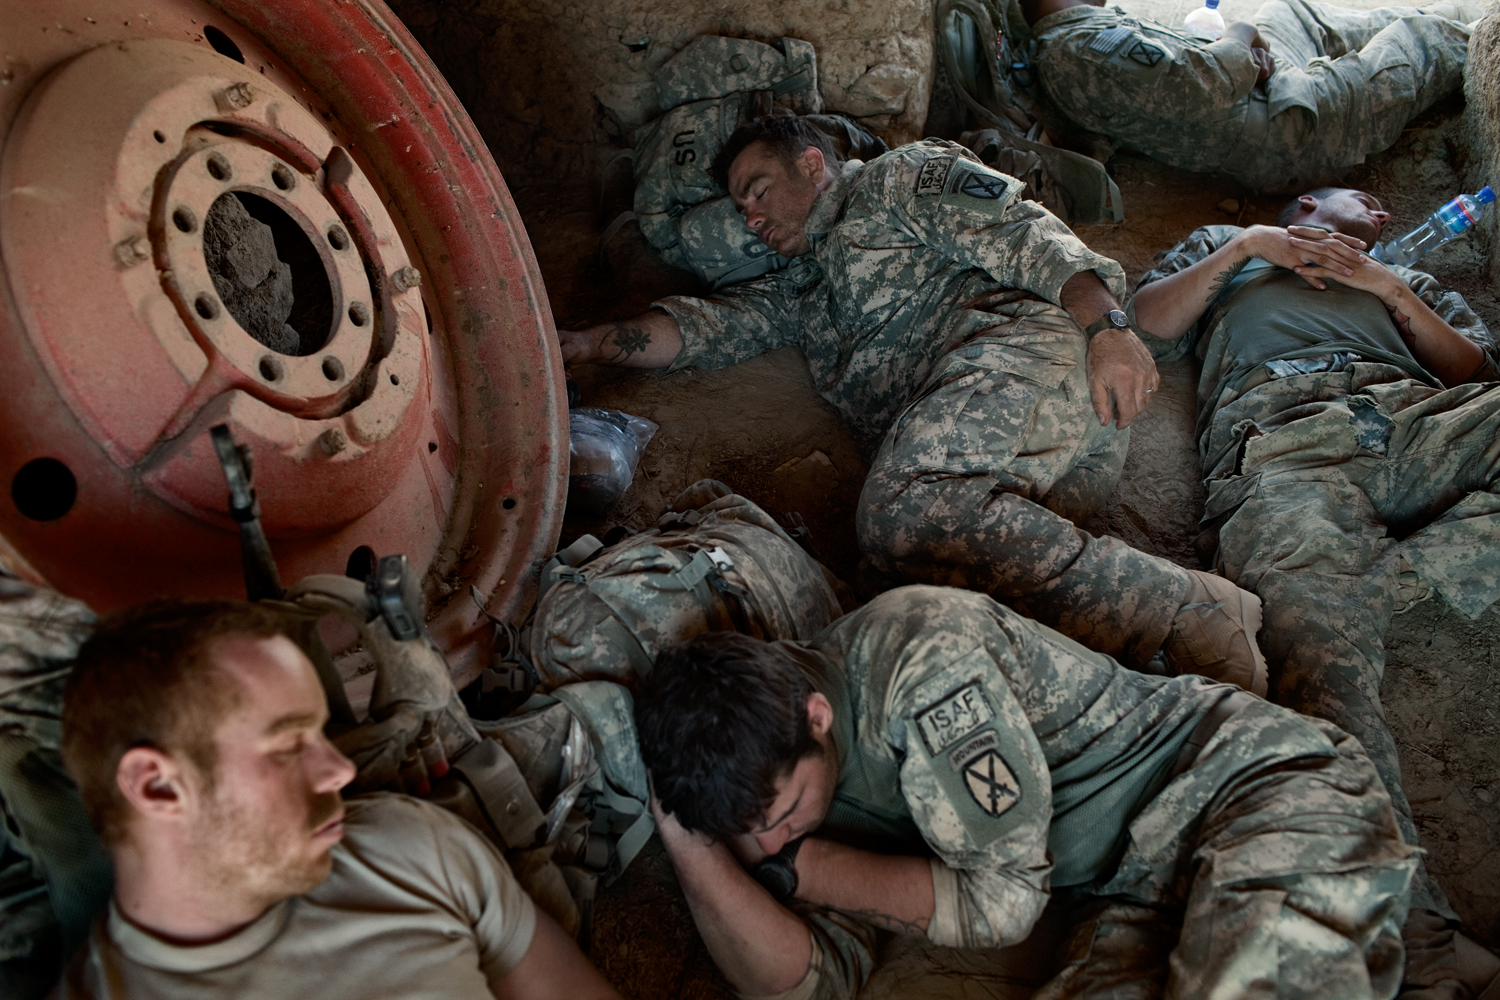 U.S. Army soldiers sleep at a temporary patrol base during an operation in the Tangi Valley, Wardak Province, Afghanistan.